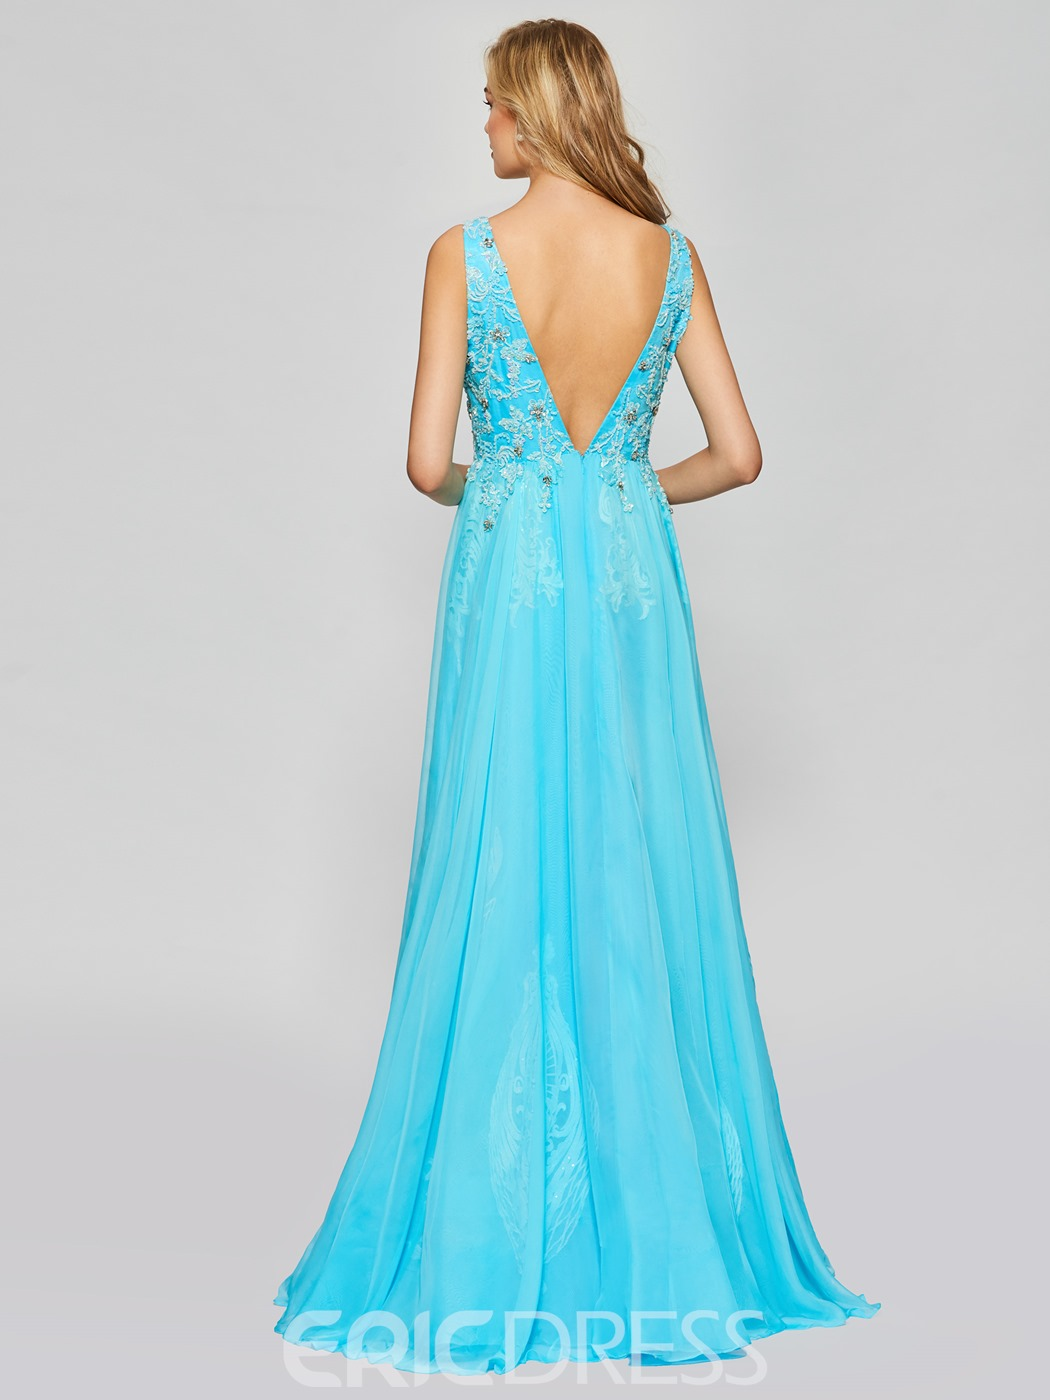 Ericdress A Line V Neck Beaded Long Prom Dress